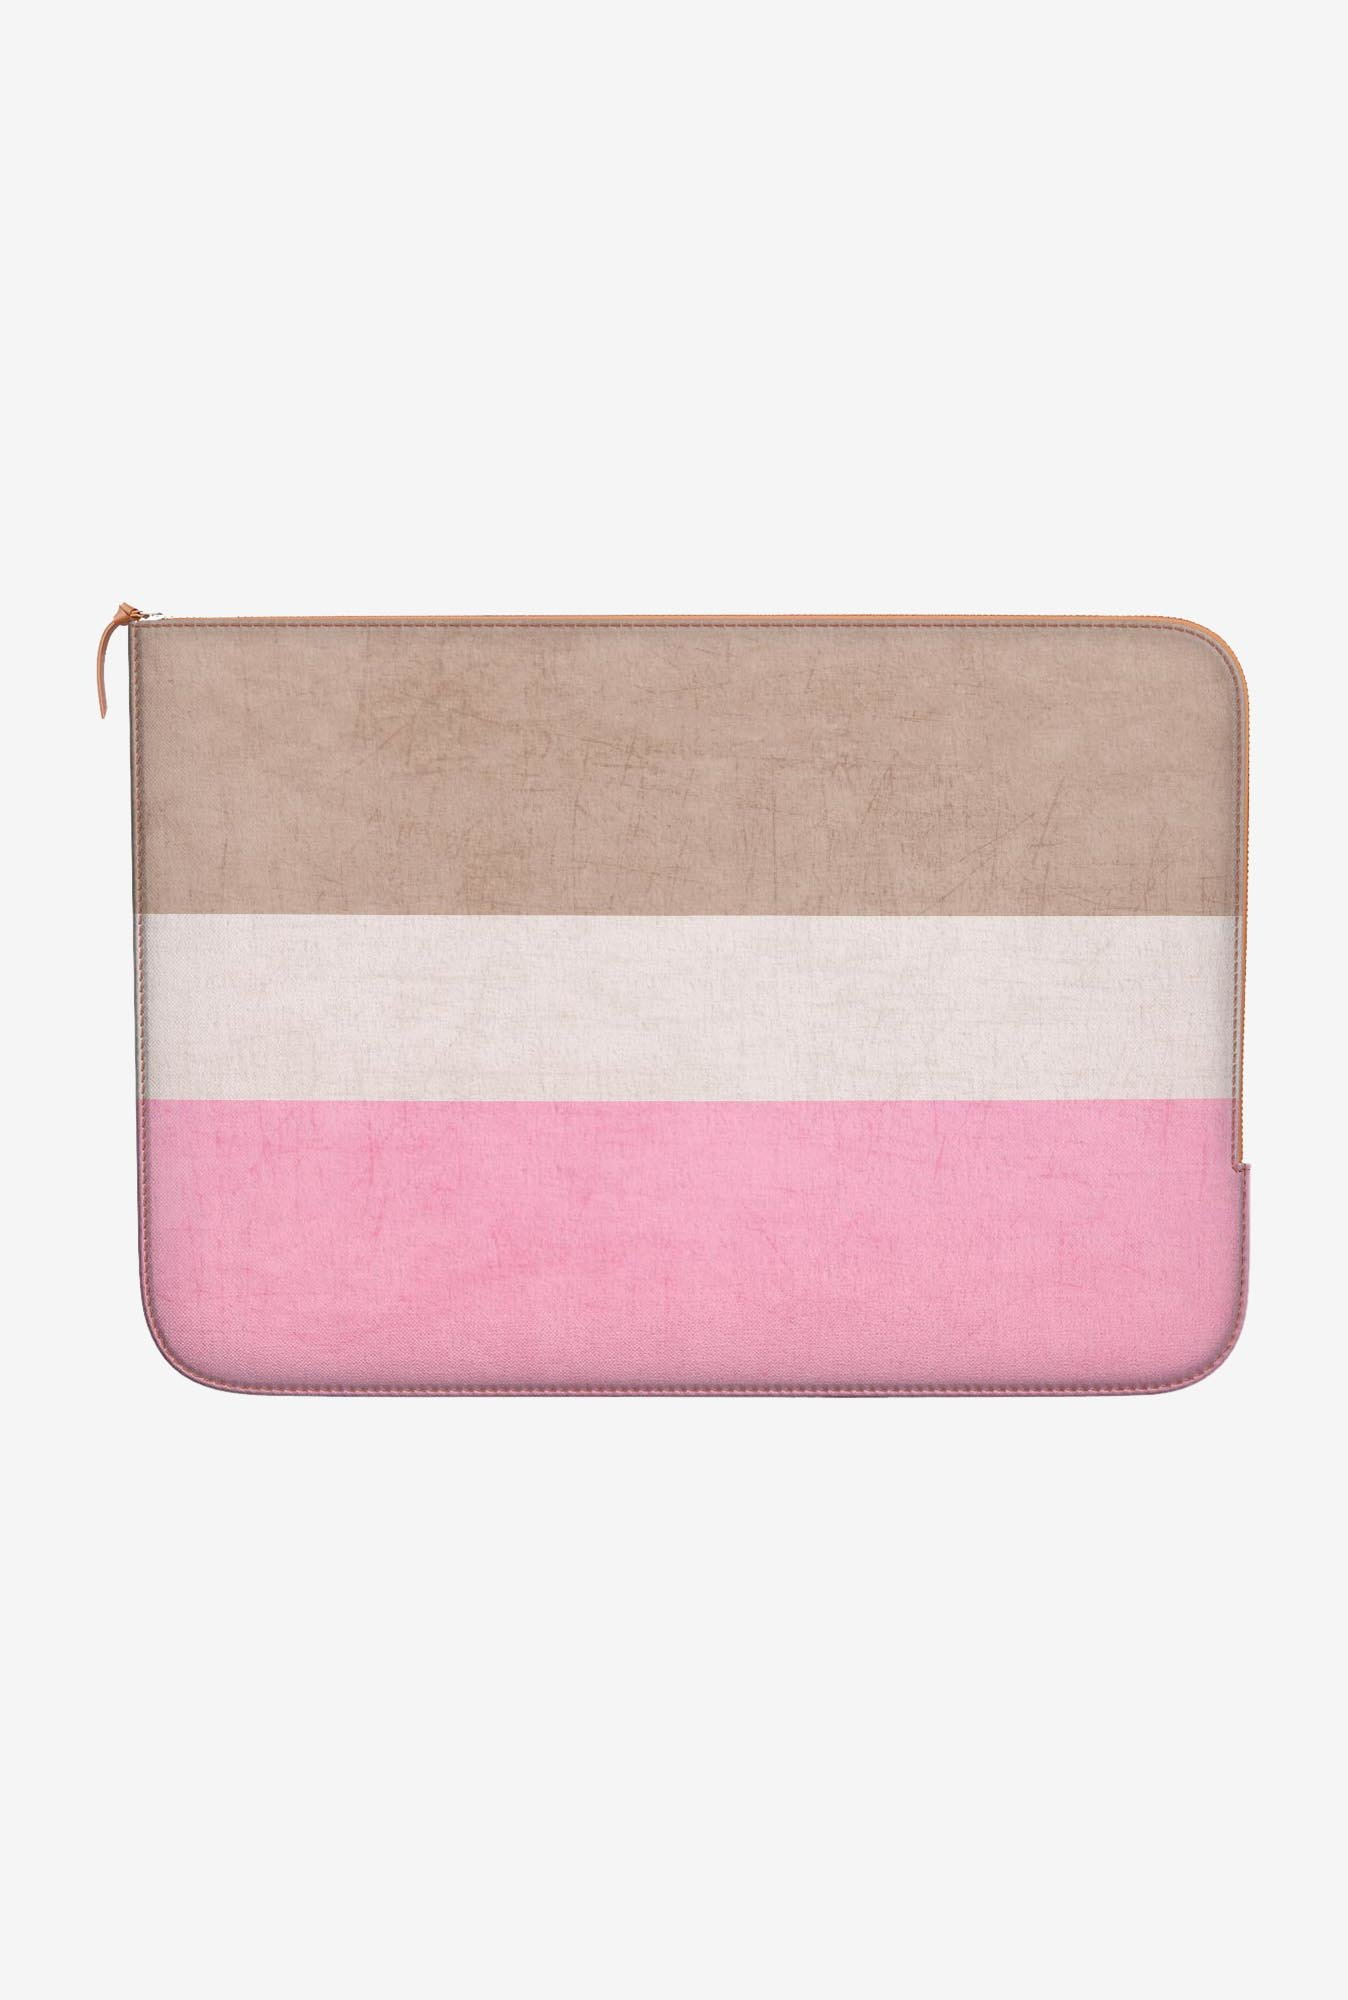 "DailyObjects Neapolitan Macbook Air 13"" Zippered Sleeve"